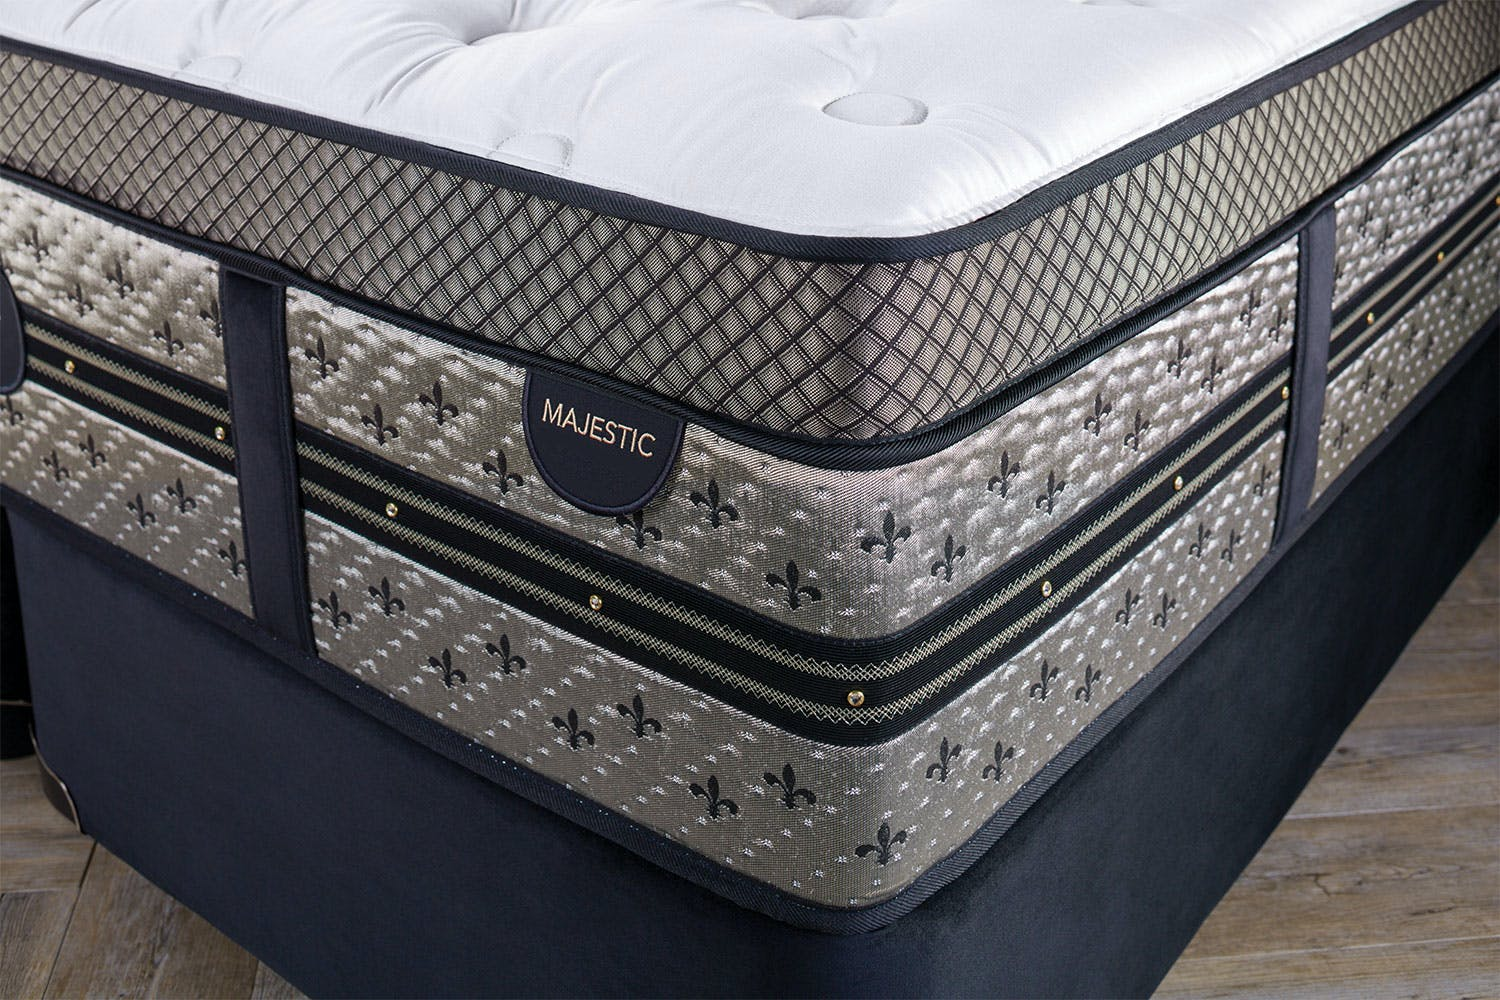 Majestic Firm Super King Bed by Beautyrest Black